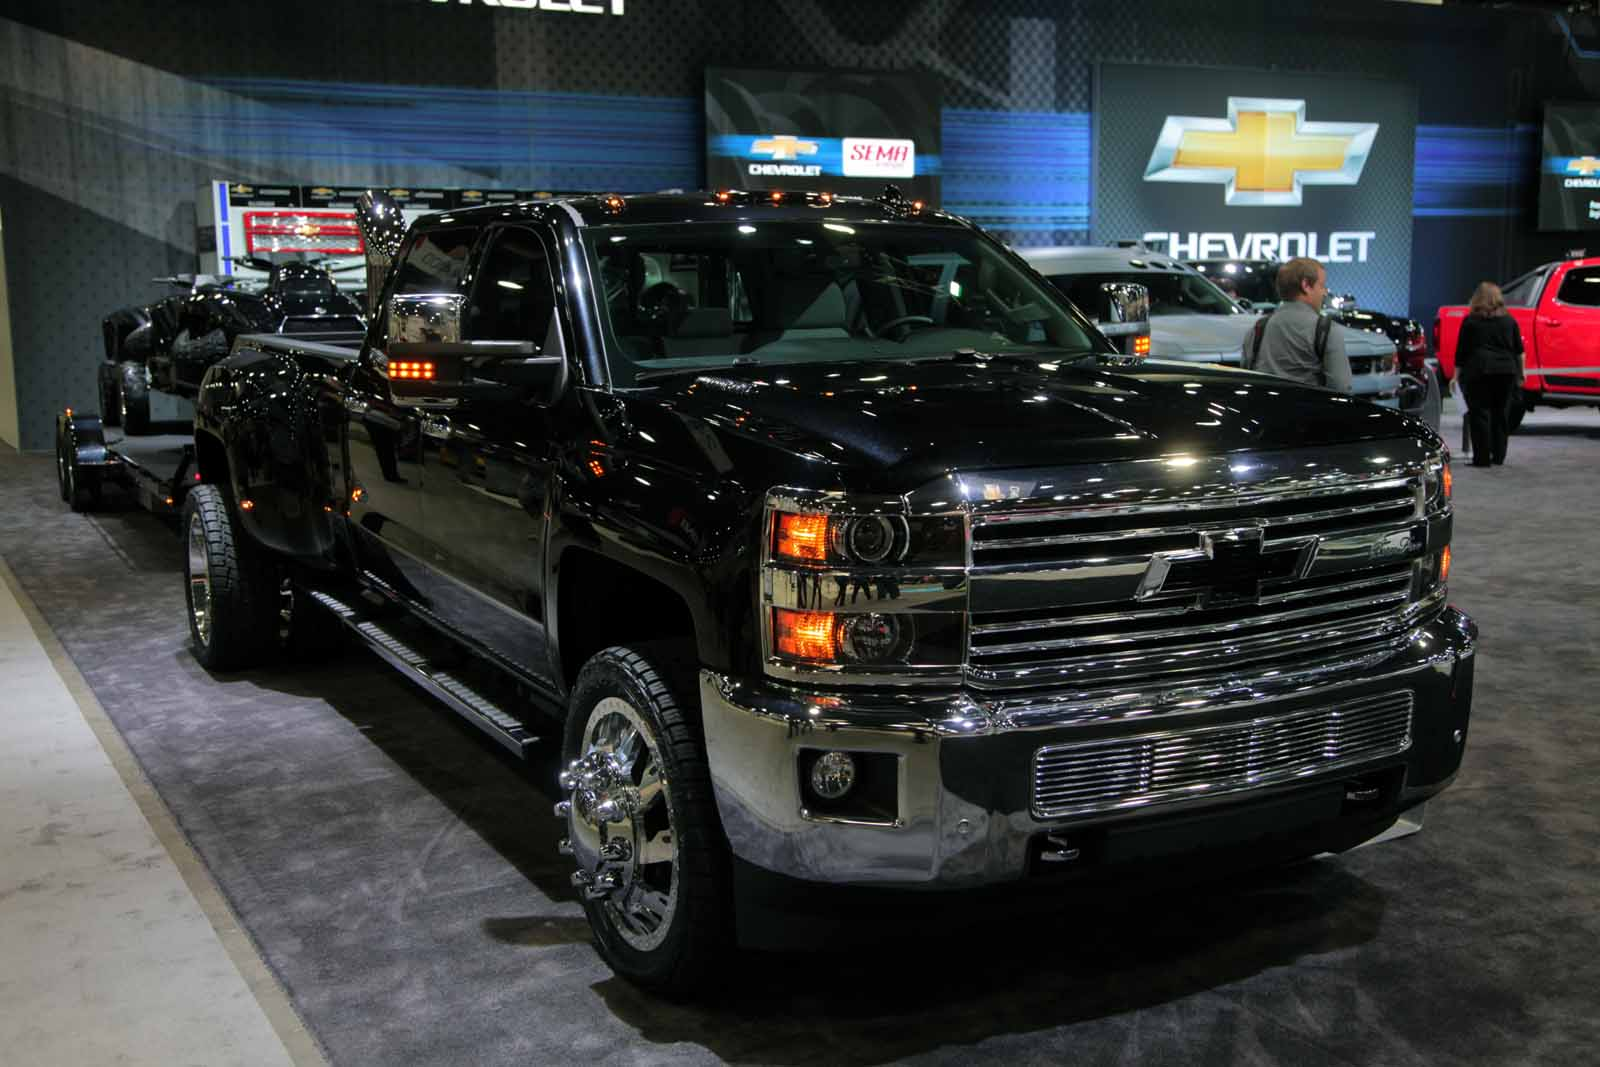 Chevrolet Silverado Concepts Bow at 2015 SEMA Show